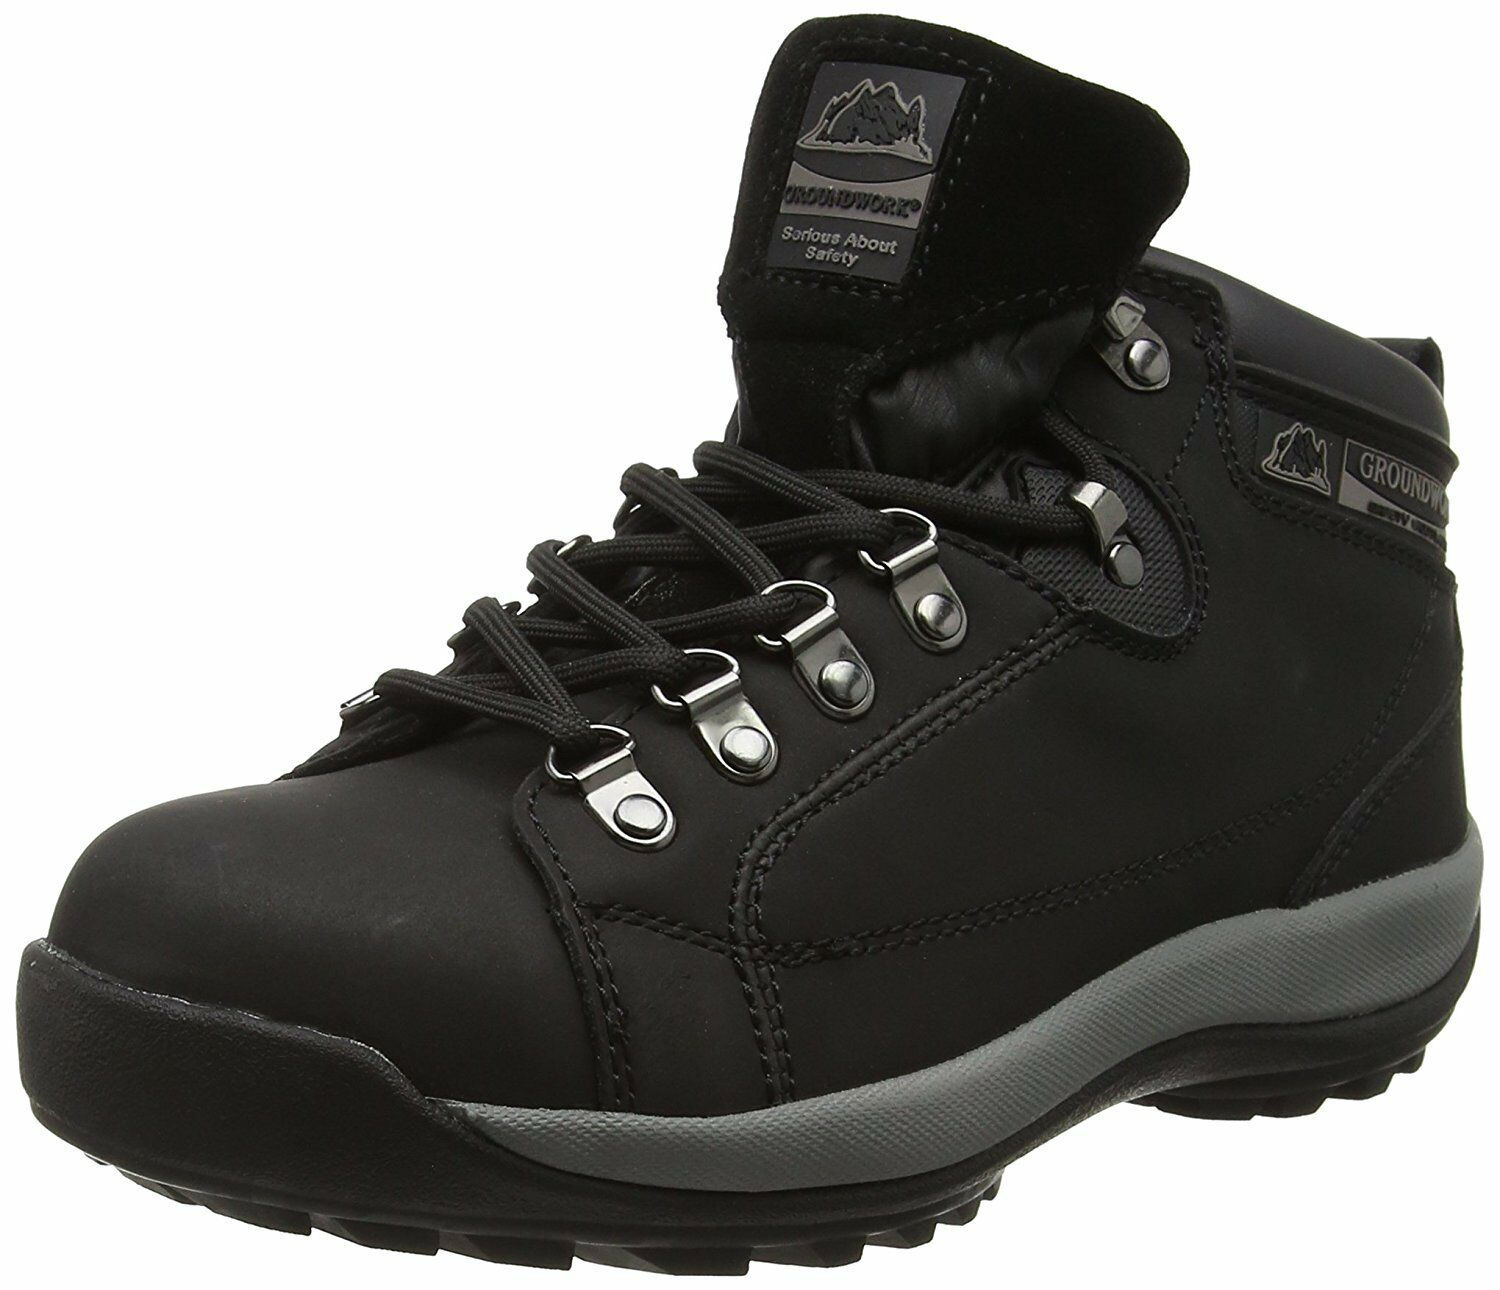 New Groundwork GR387 Safety Steel Toe Cap Work Boots Leather Hiking shoes Black